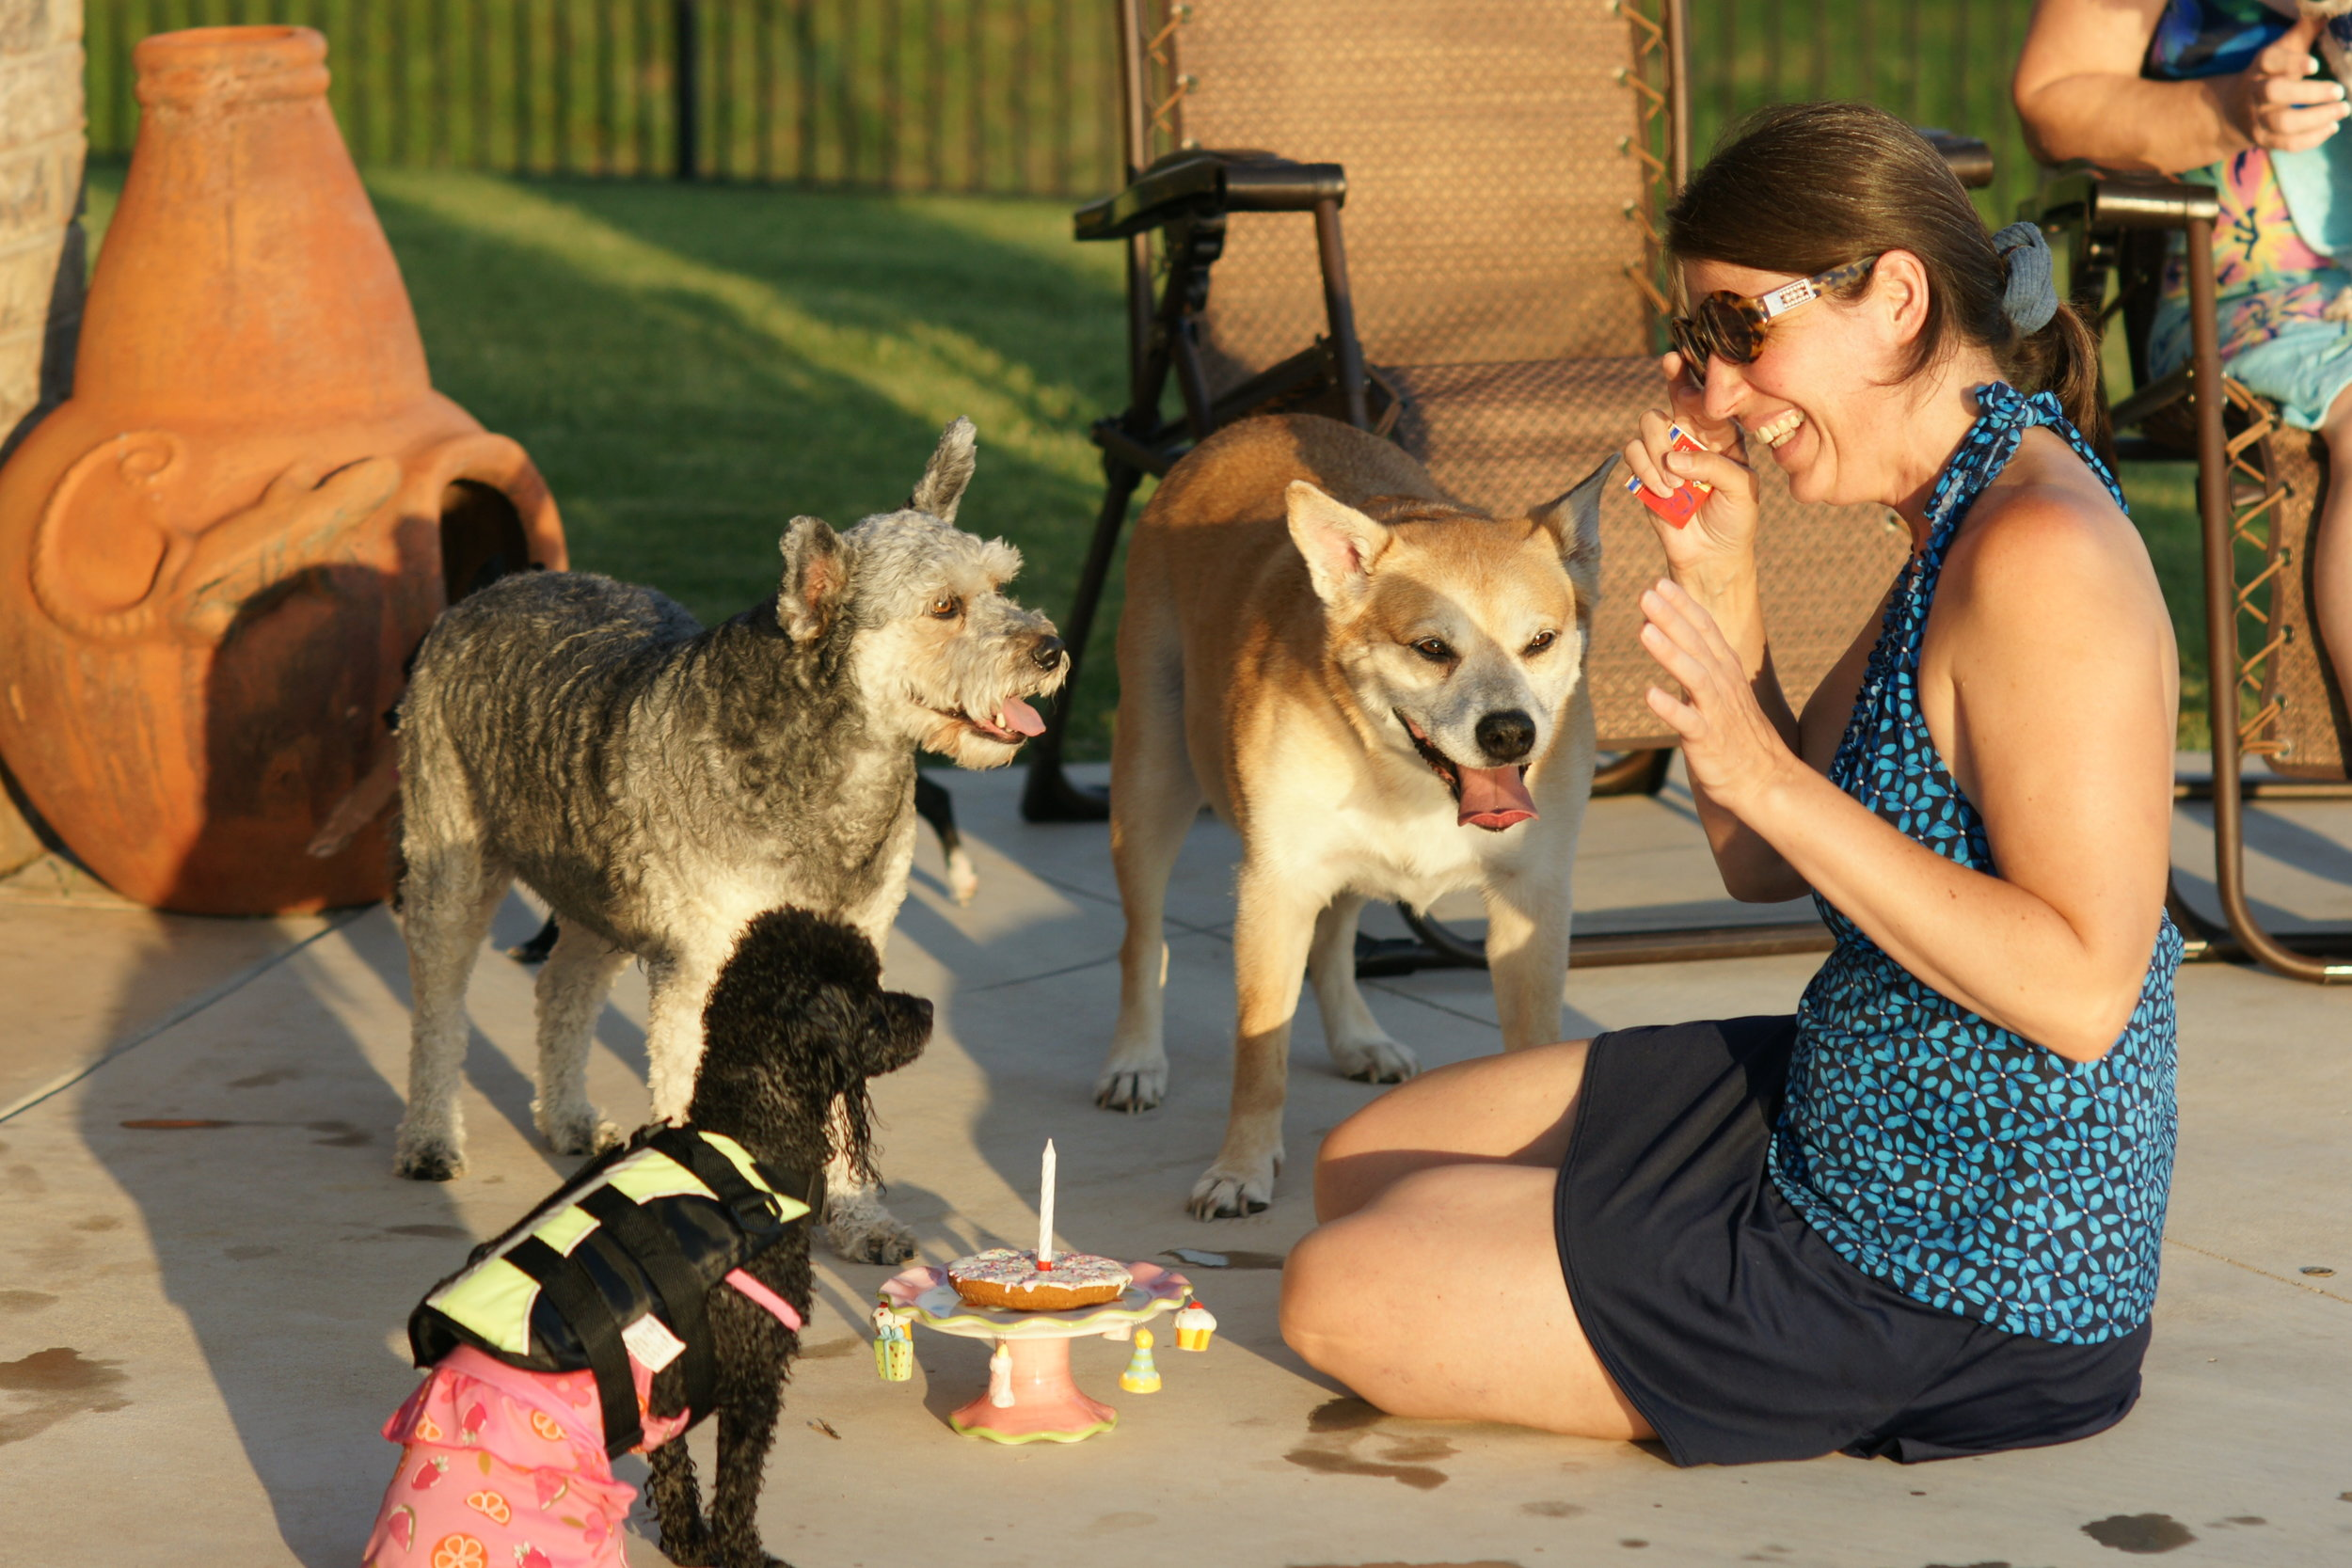 Celebrating Leo's birthday, with a pool pawty, many moons ago! Leo has since crossed over, (middle) along with his adopted sister Sabrina, the blond bombshell to the right, and little Miss Grace is still with me!